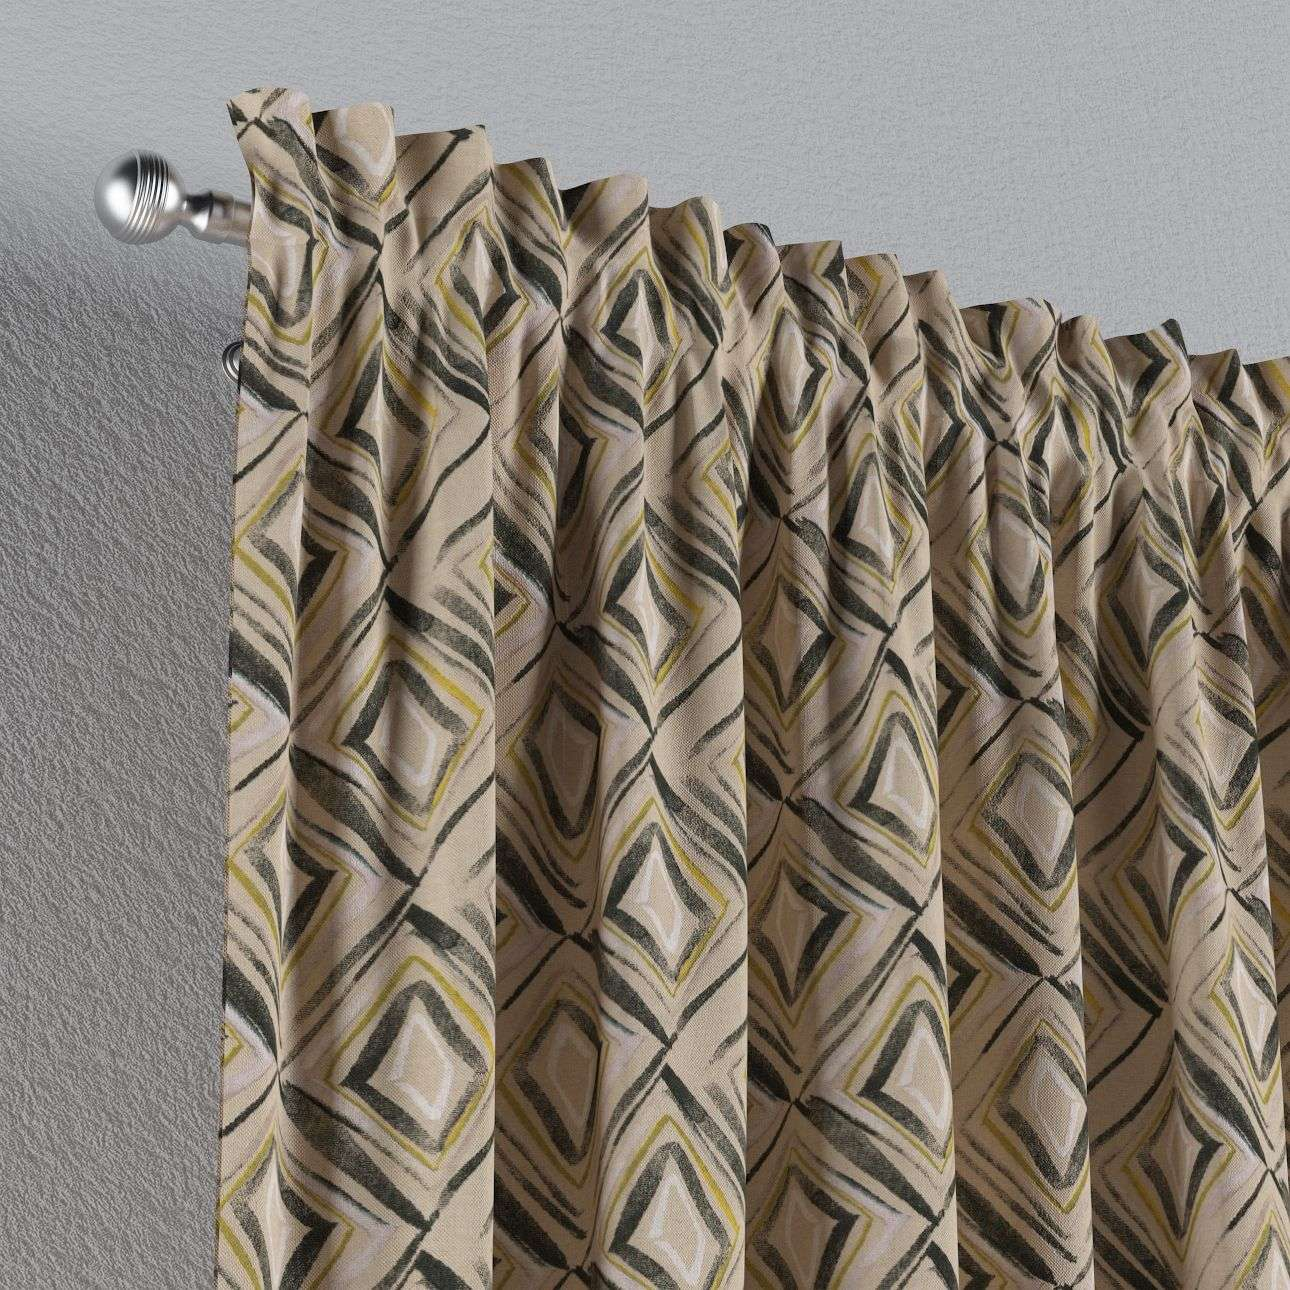 Slot and frill curtains 130 x 260 cm (51 x 102 inch) in collection Londres, fabric: 140-46